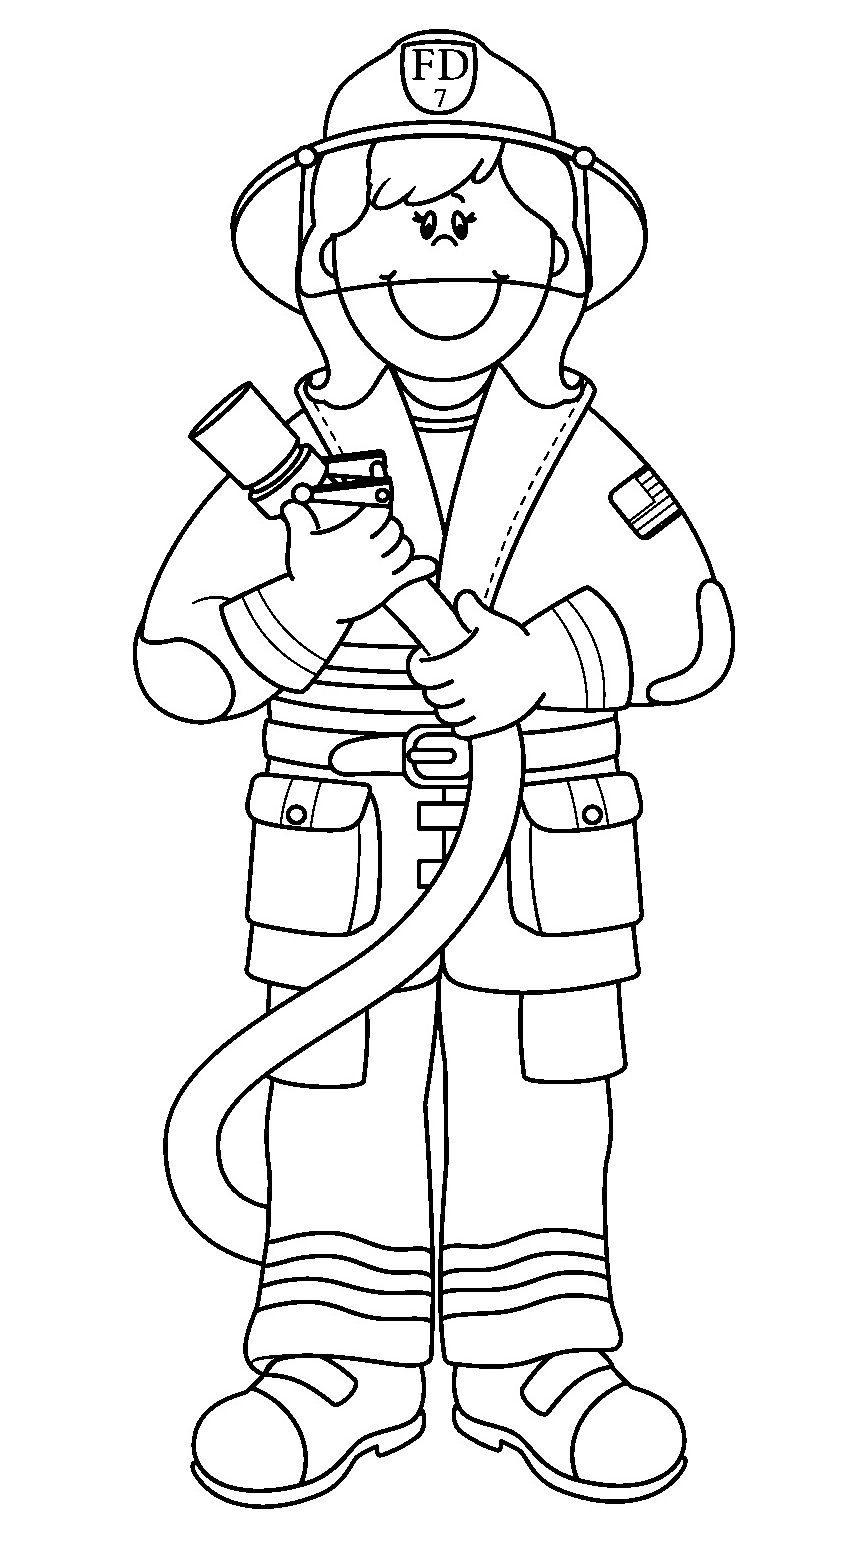 White fireman clipart picture library download Printable Fireman Coloring Pages | Printable Firefighter Coloring ... picture library download